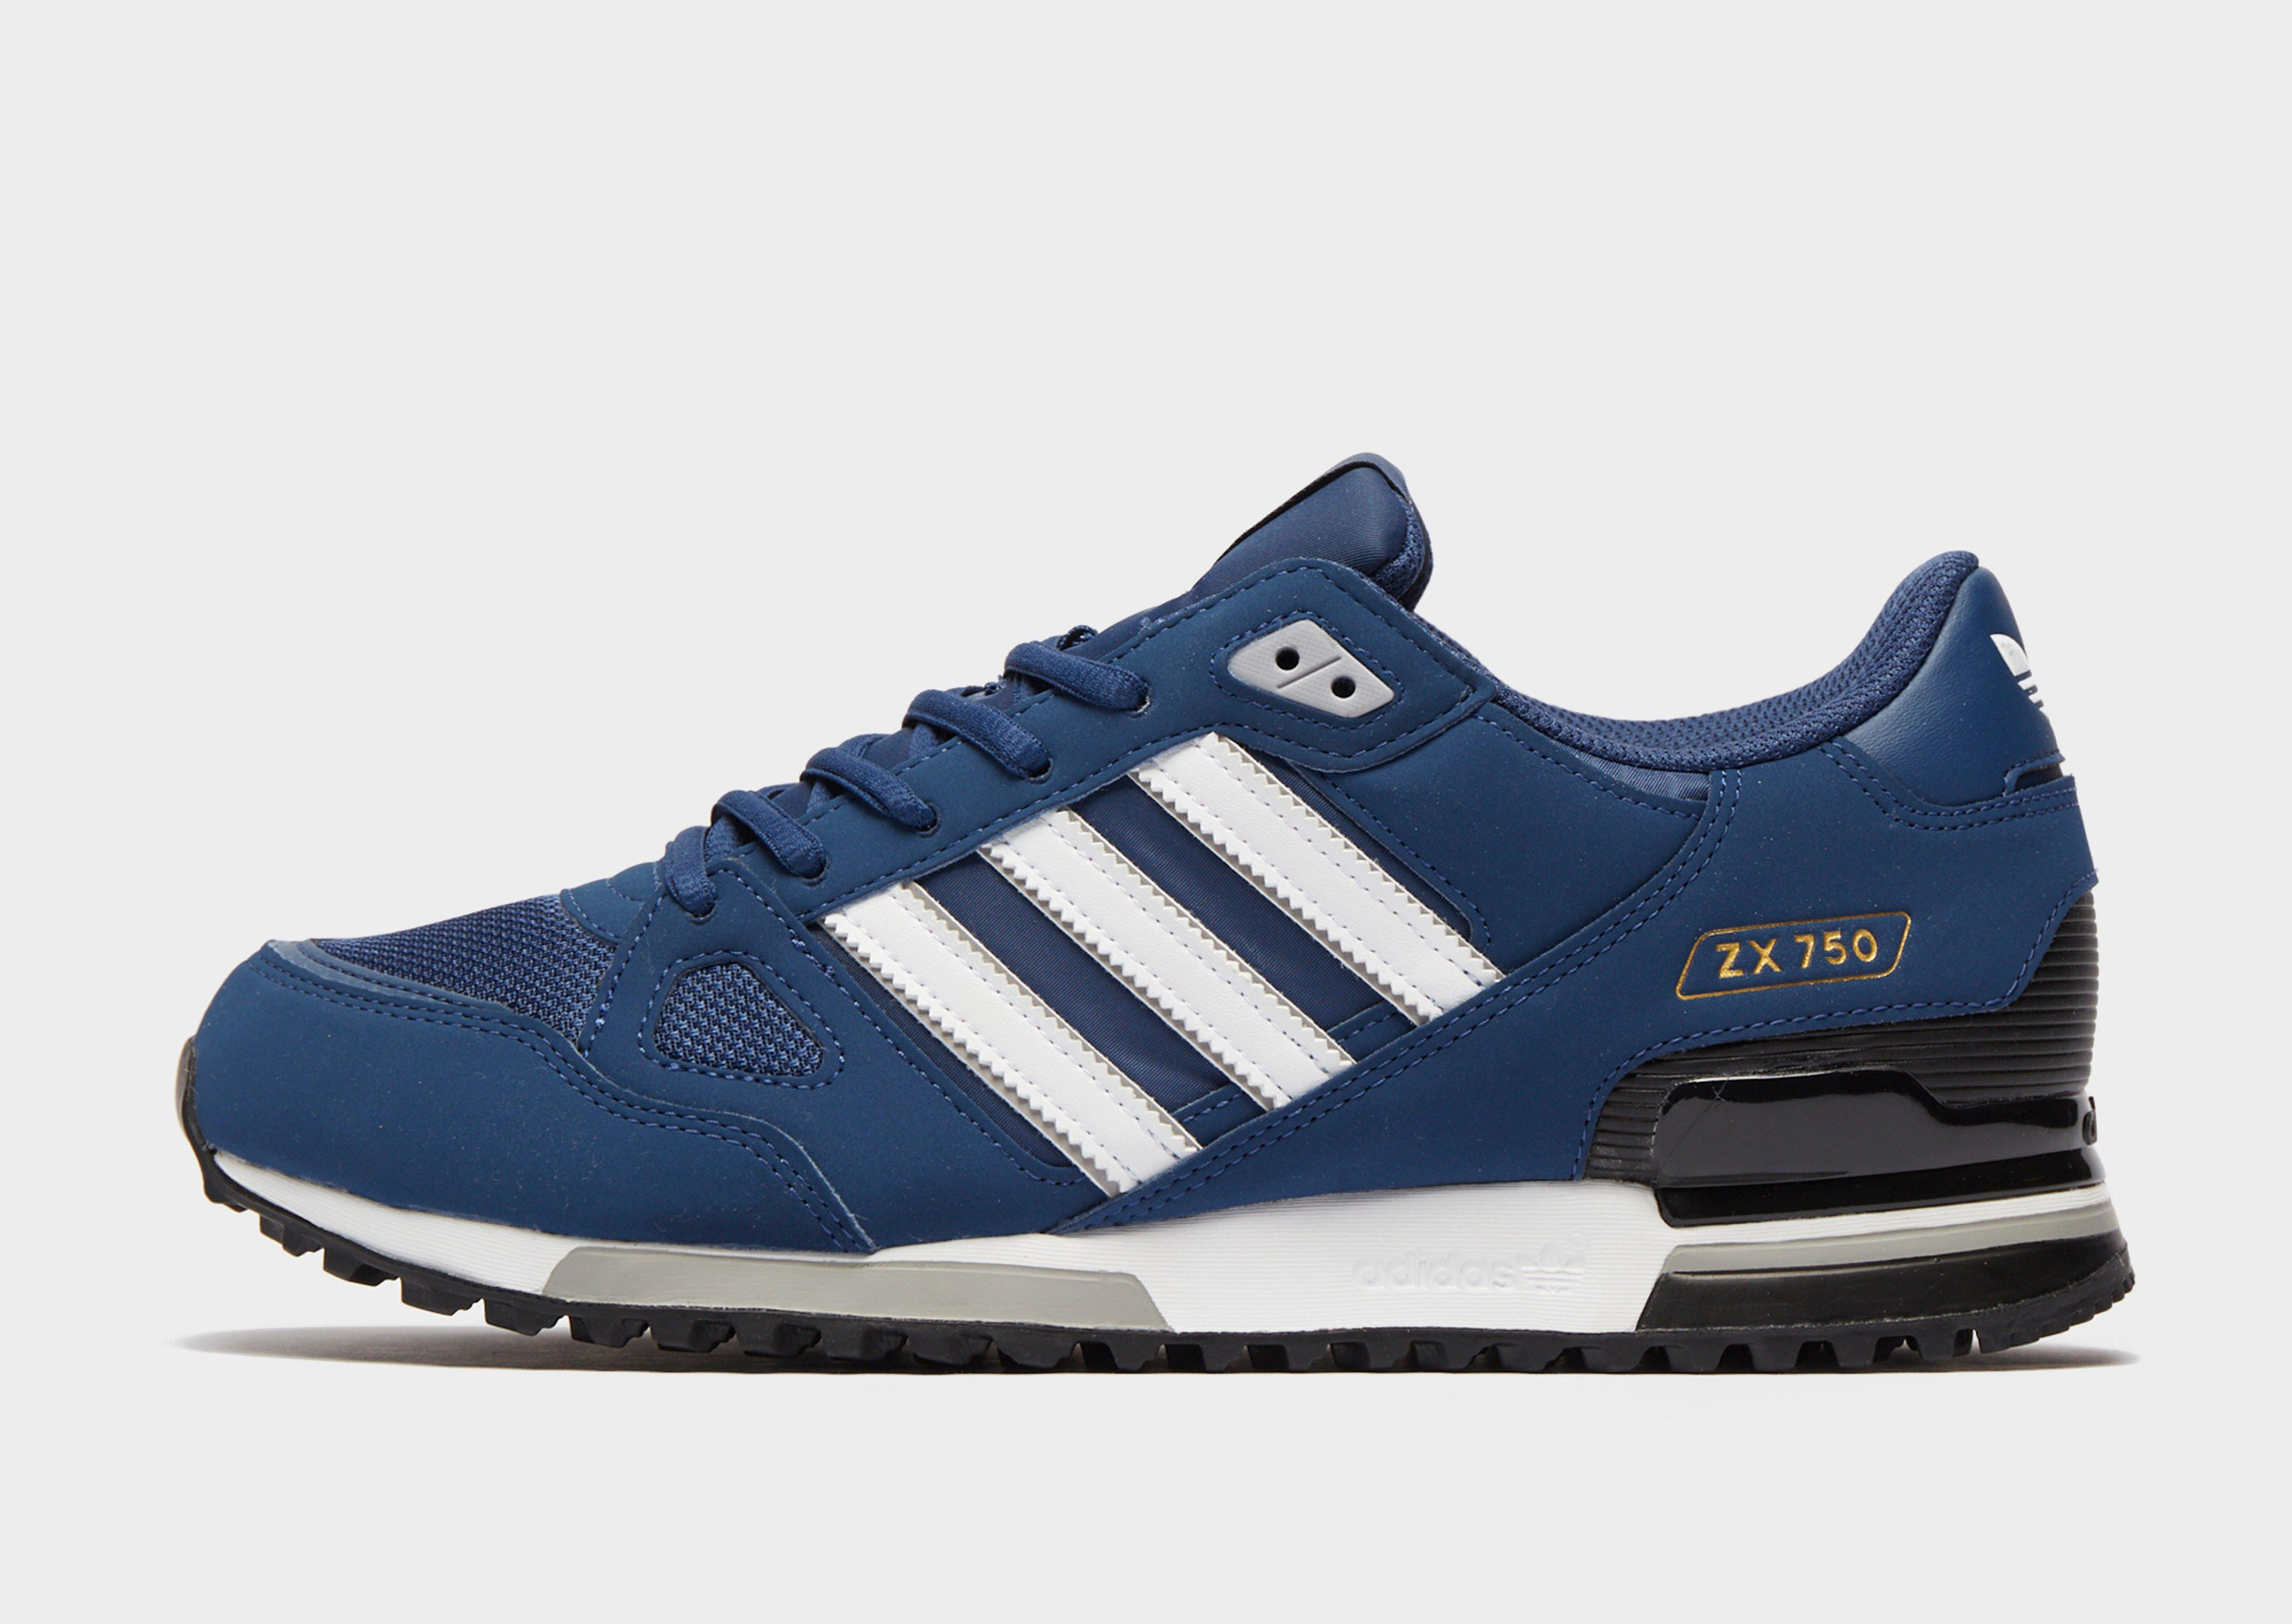 basket adidas homme zx 750 Off 57% - www.bashhguidelines.org